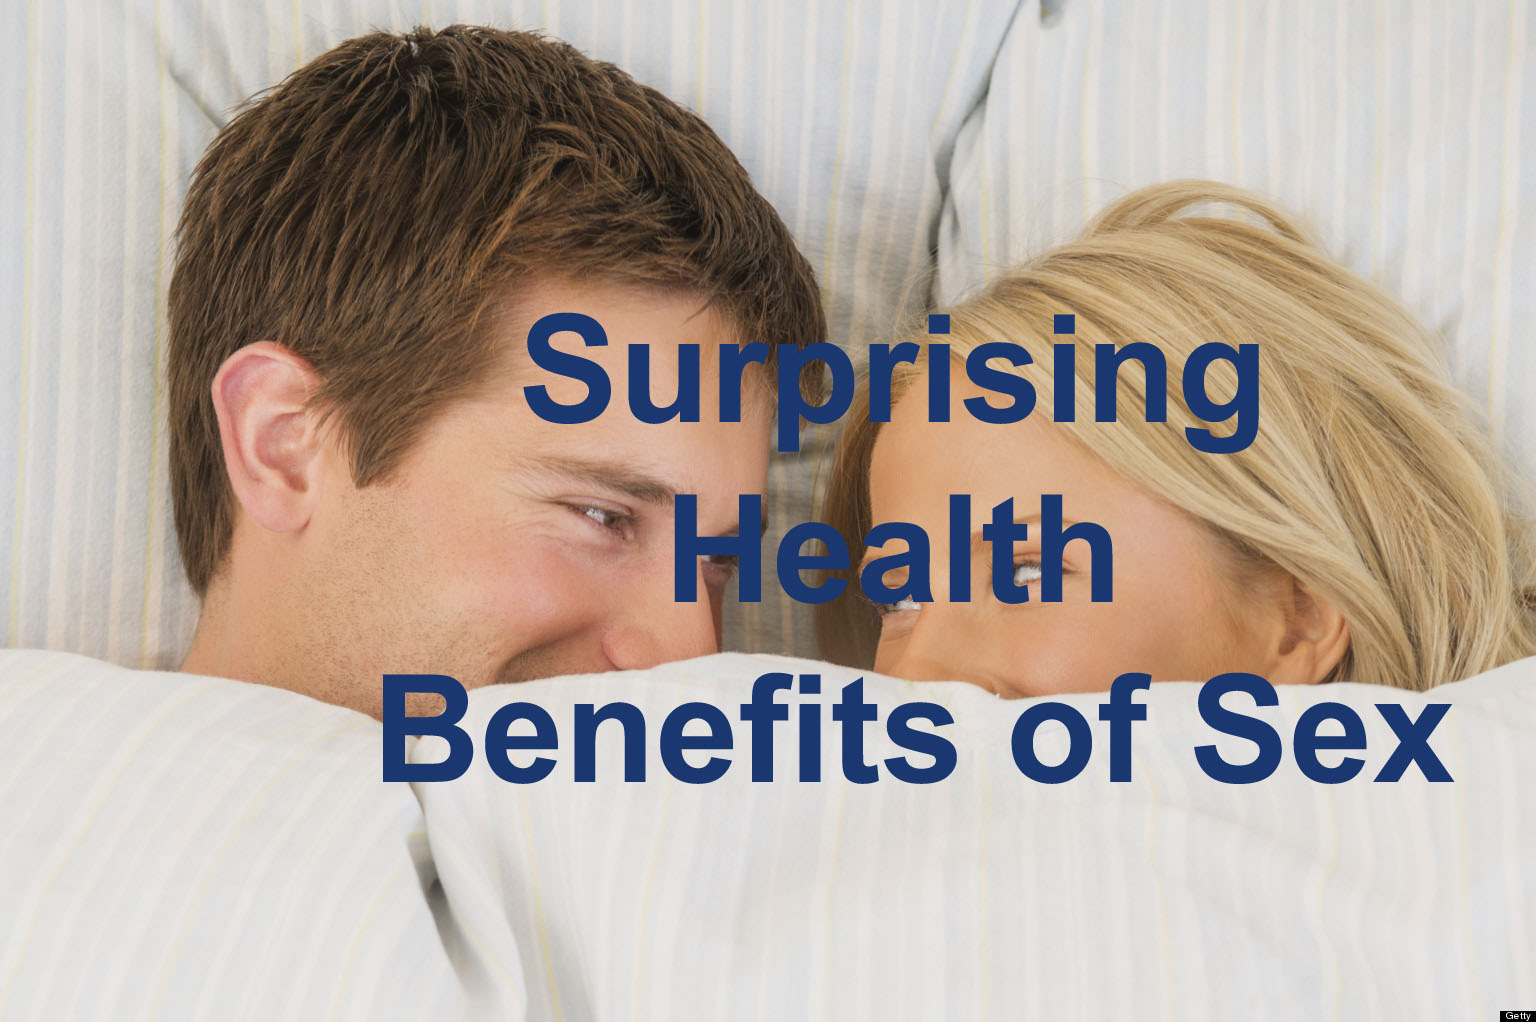 Surprising Health Benefits of Sex